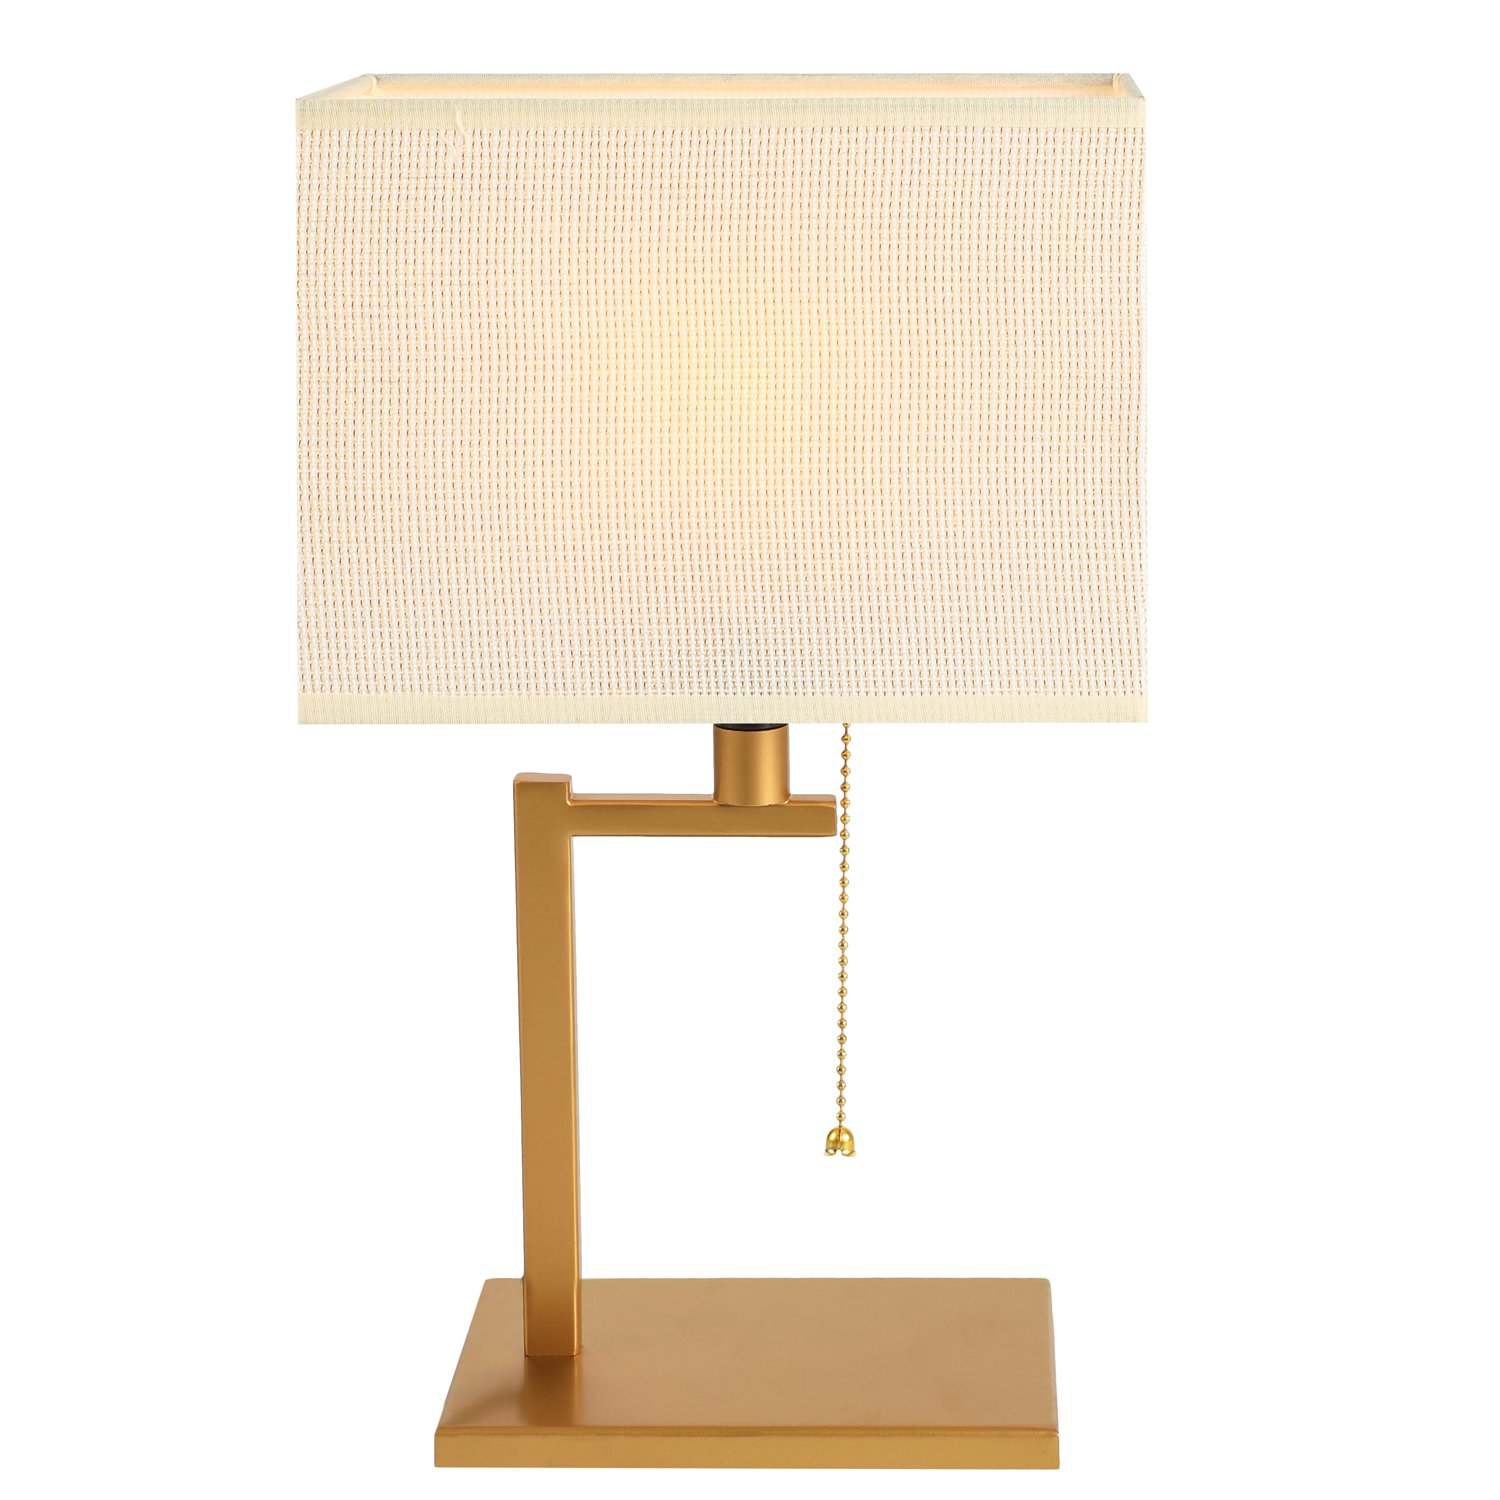 WAYKING Table Lamp, Modern Matt Brass Finish Metal Frame Bedside Lamp with Beige and Gold Fabric Shade